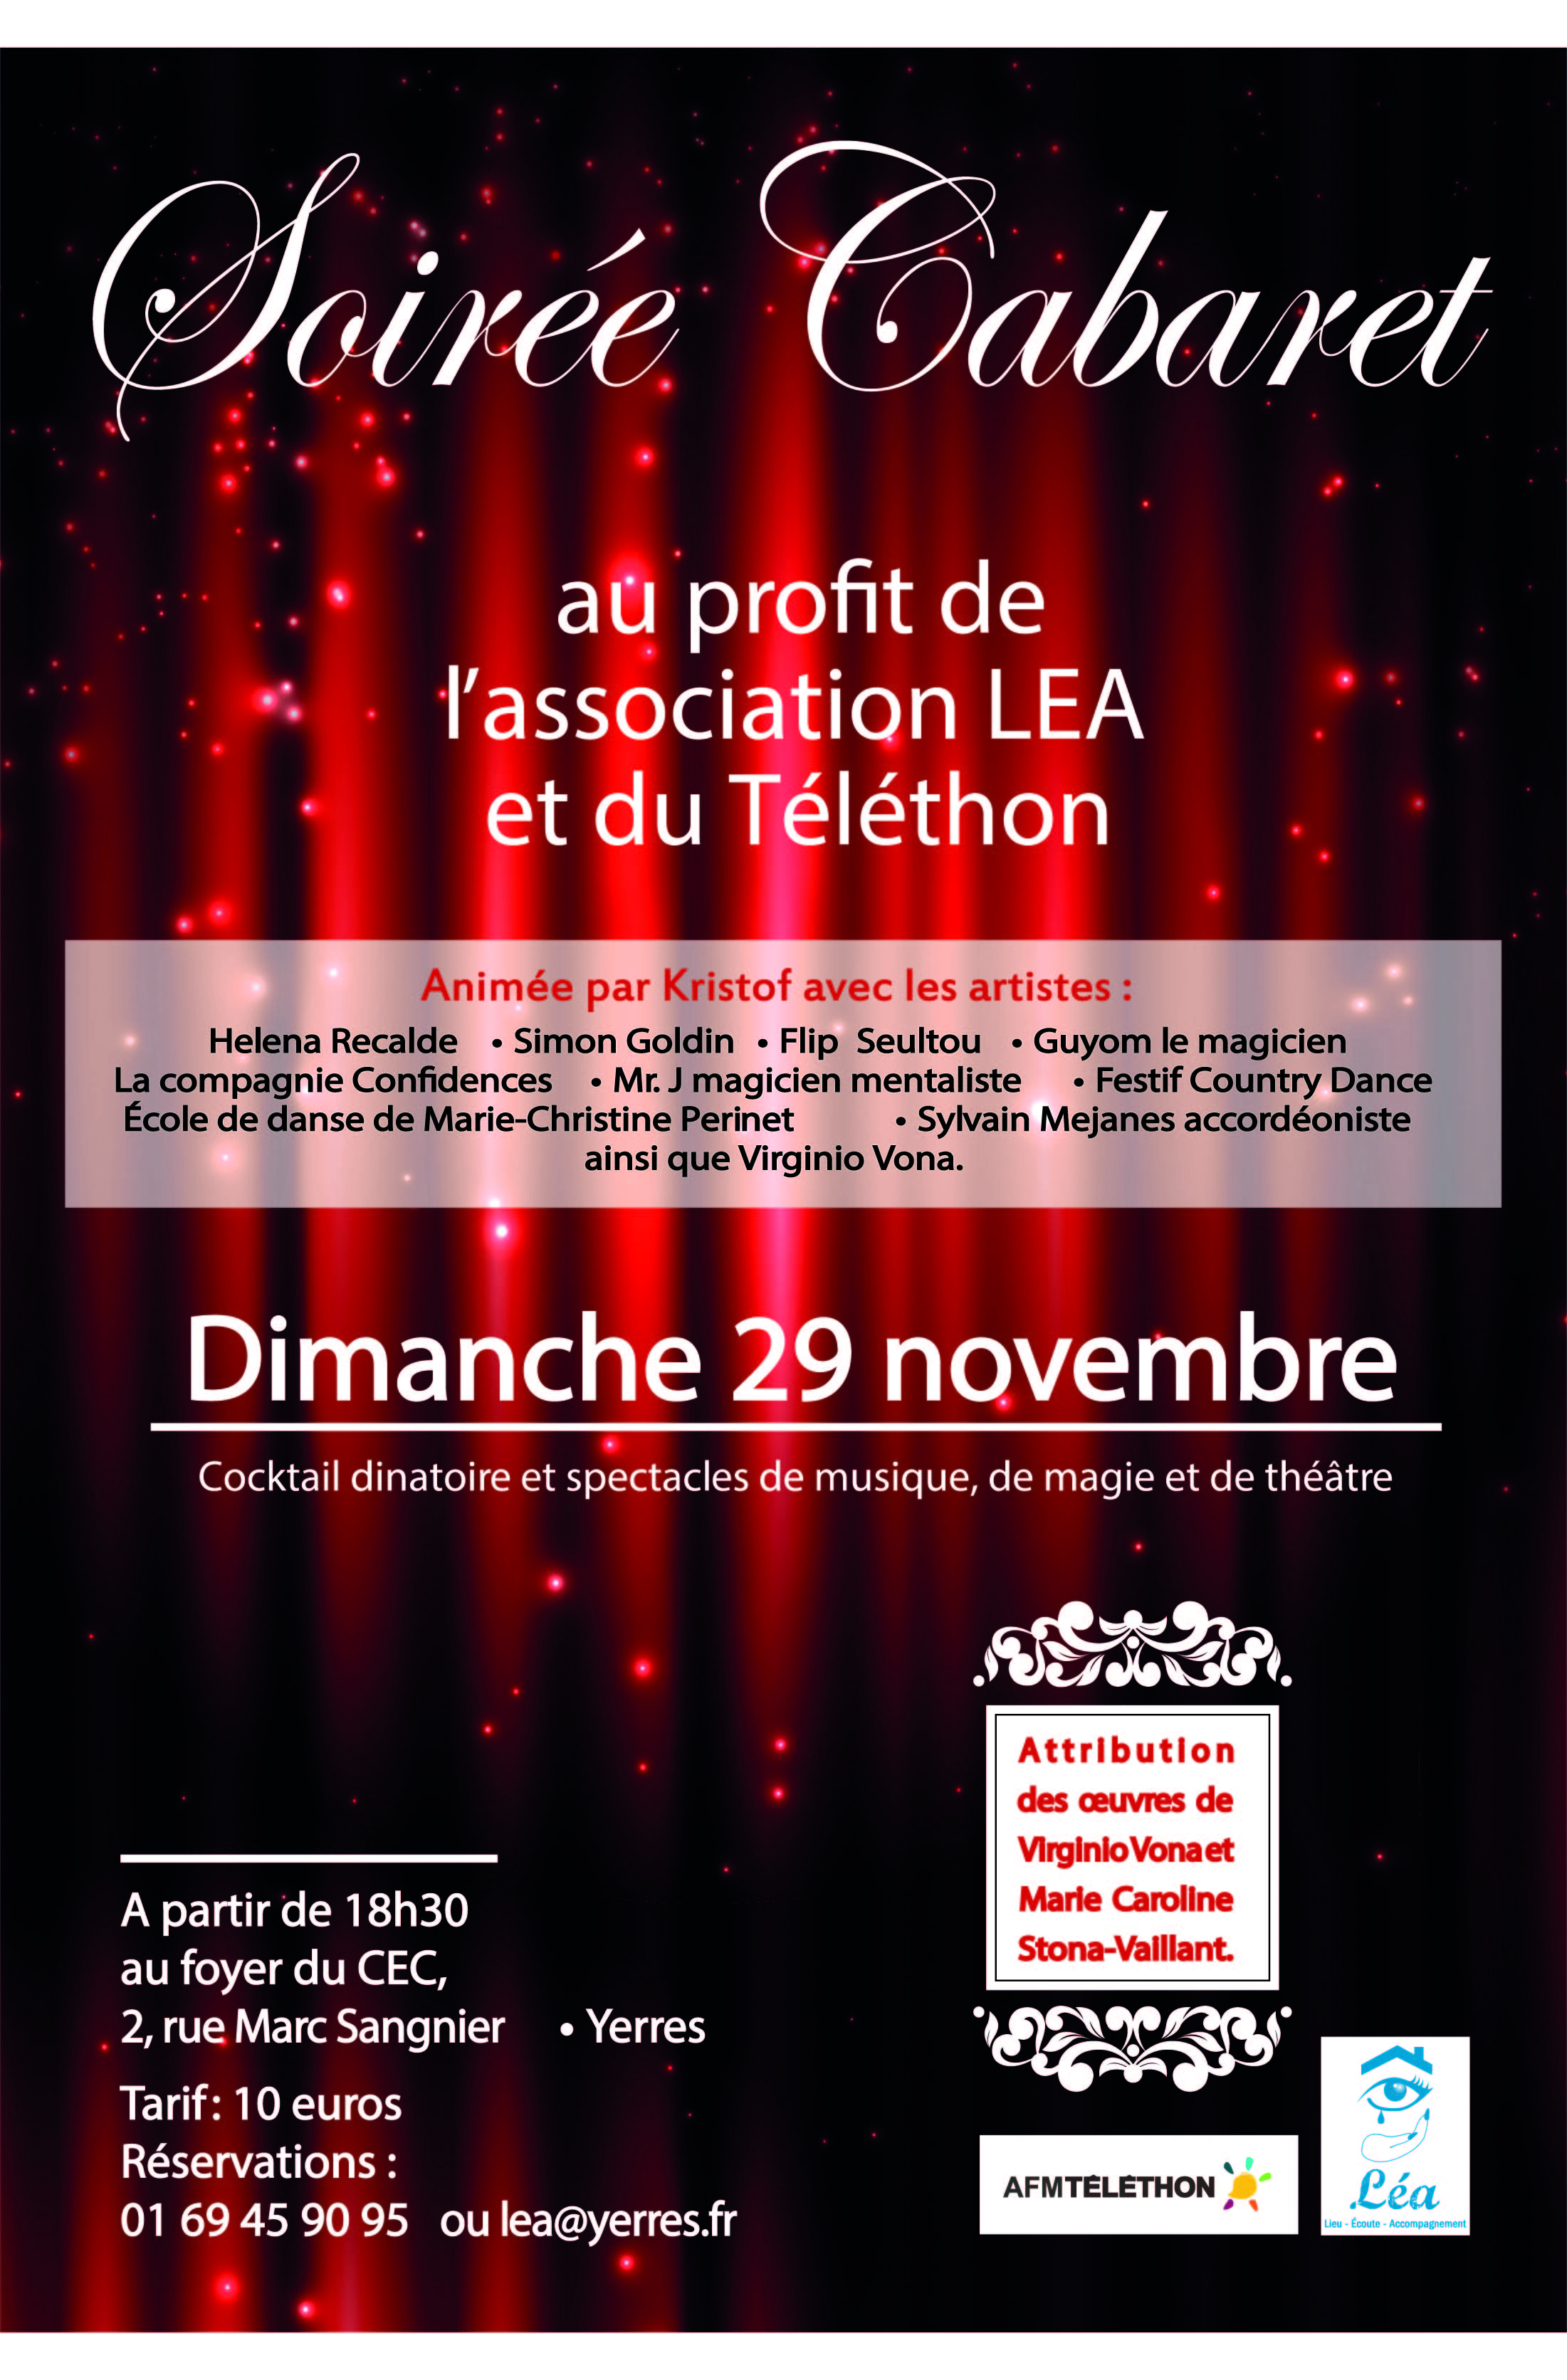 soir e cabaret dimanche 29 novembre au profit de l 39 association lea et du telethon communaut d. Black Bedroom Furniture Sets. Home Design Ideas